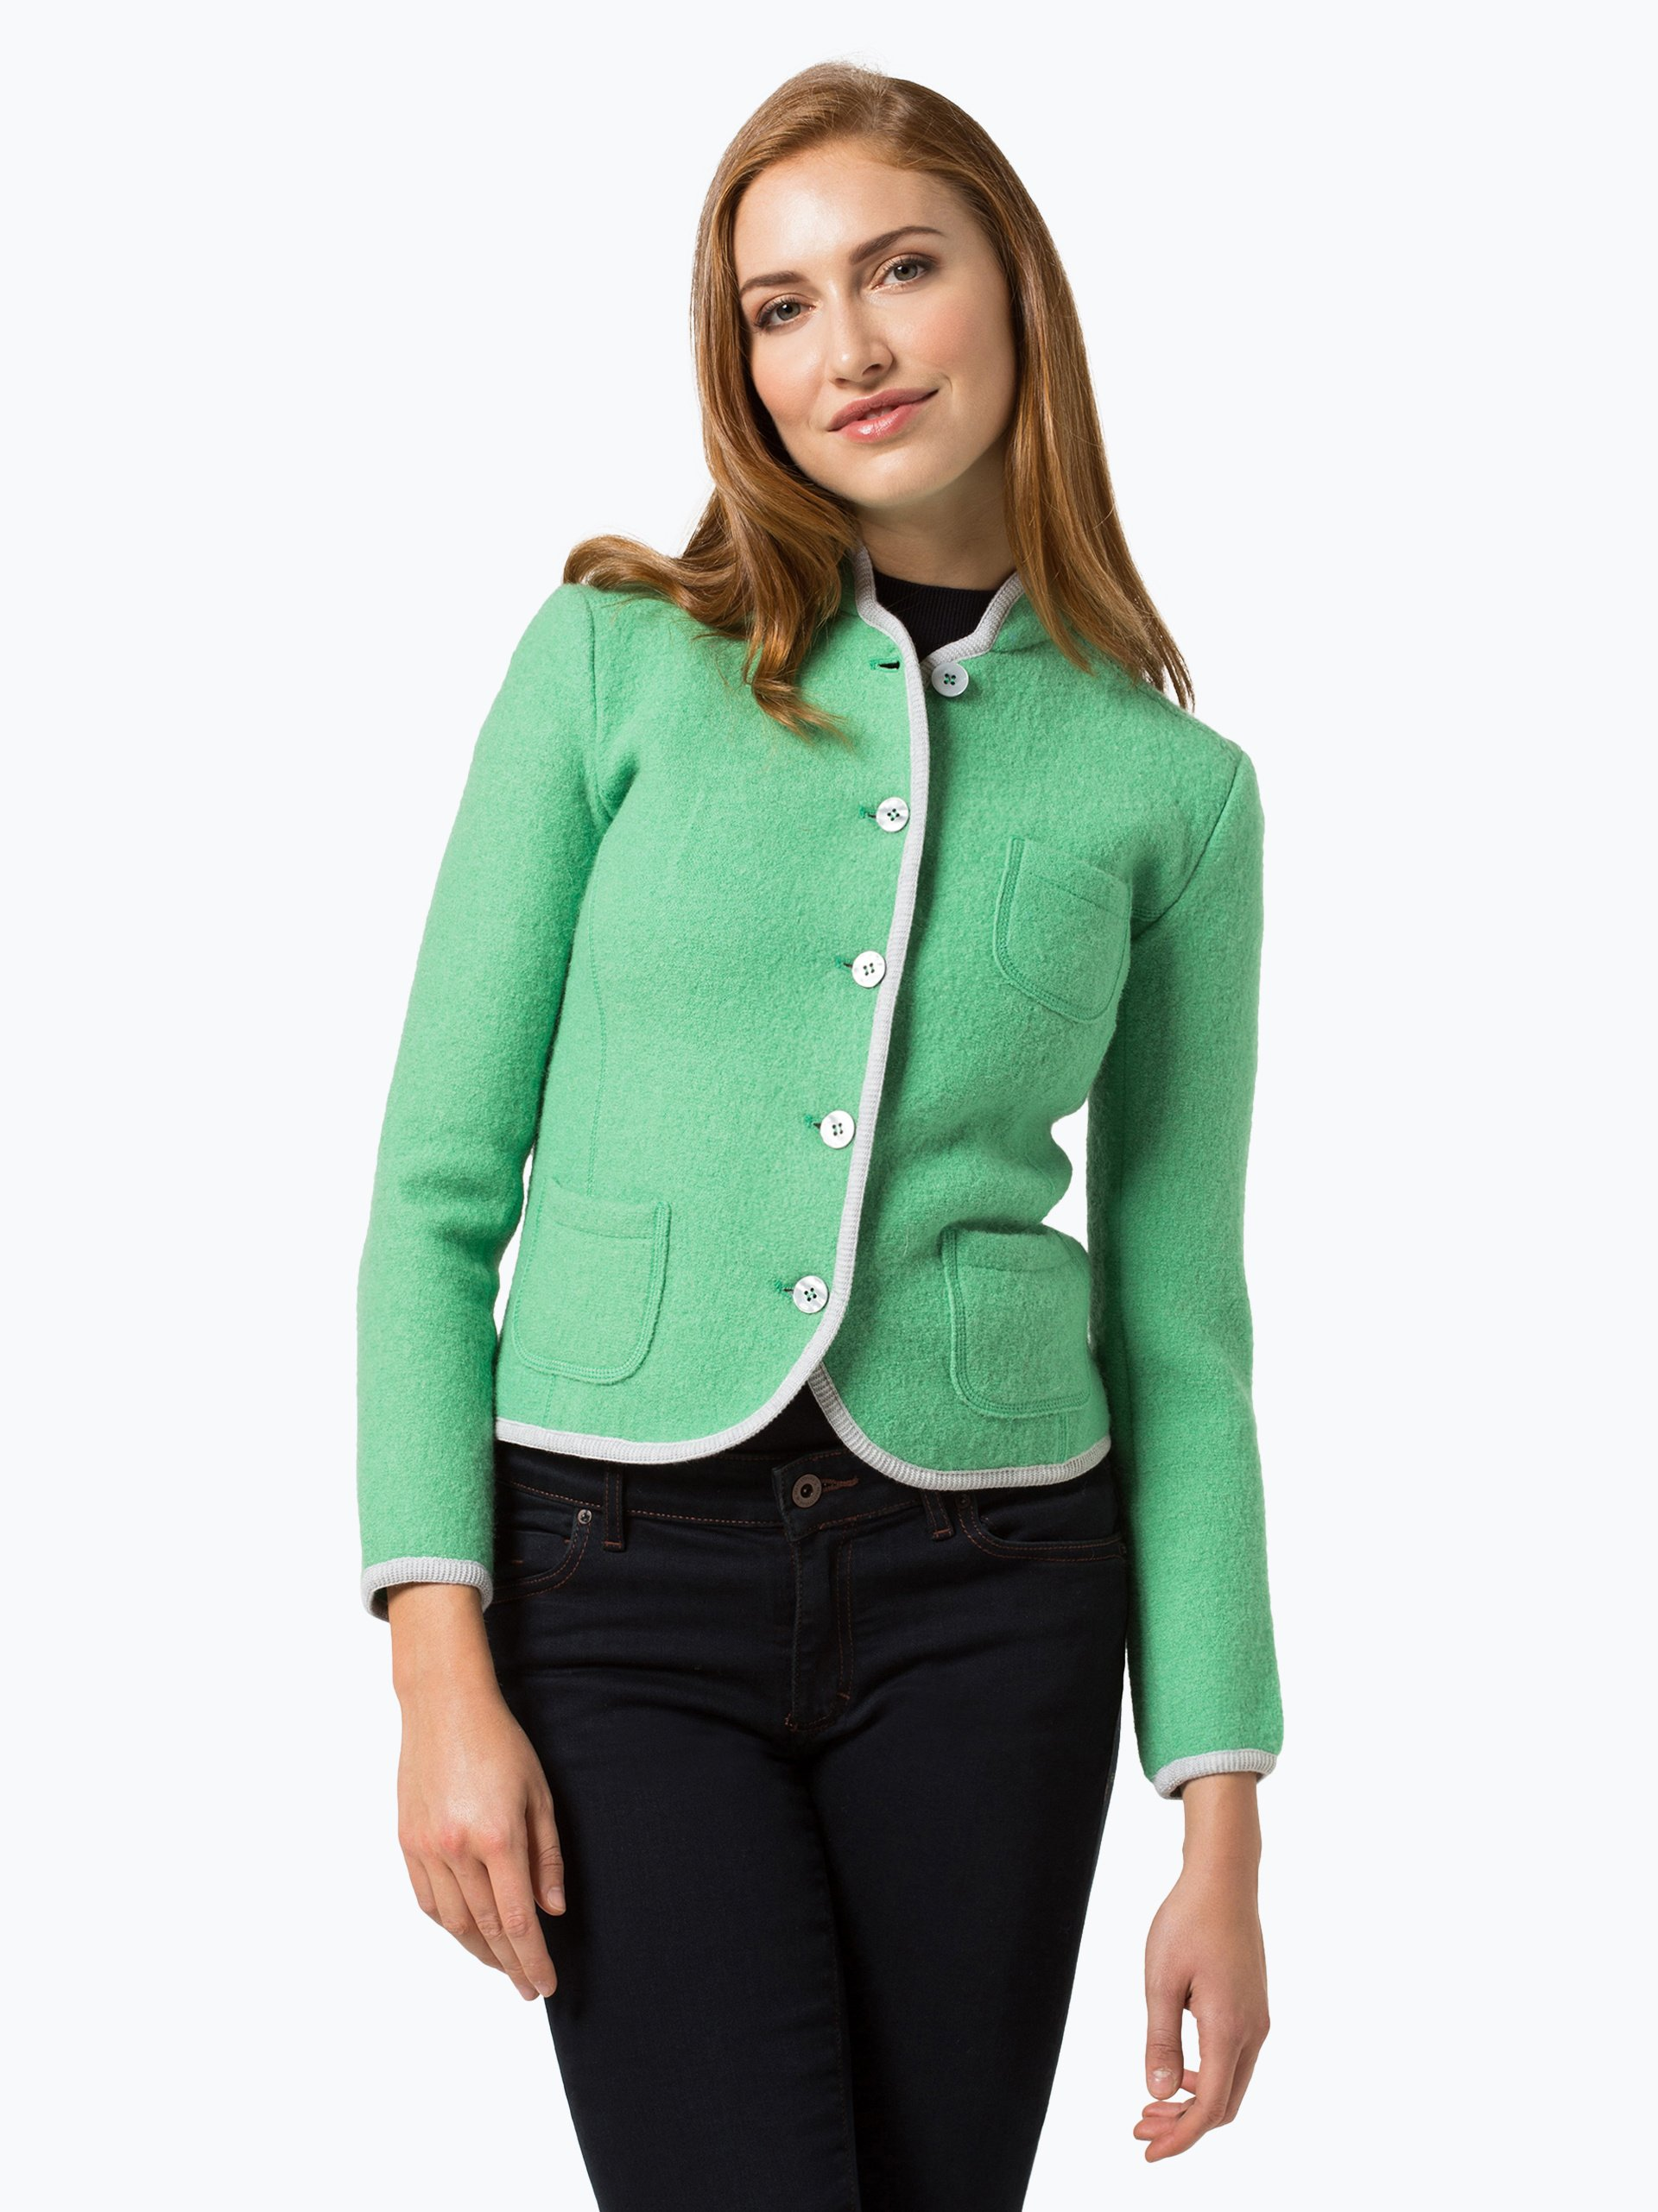 Apriori Damen Strickjacke